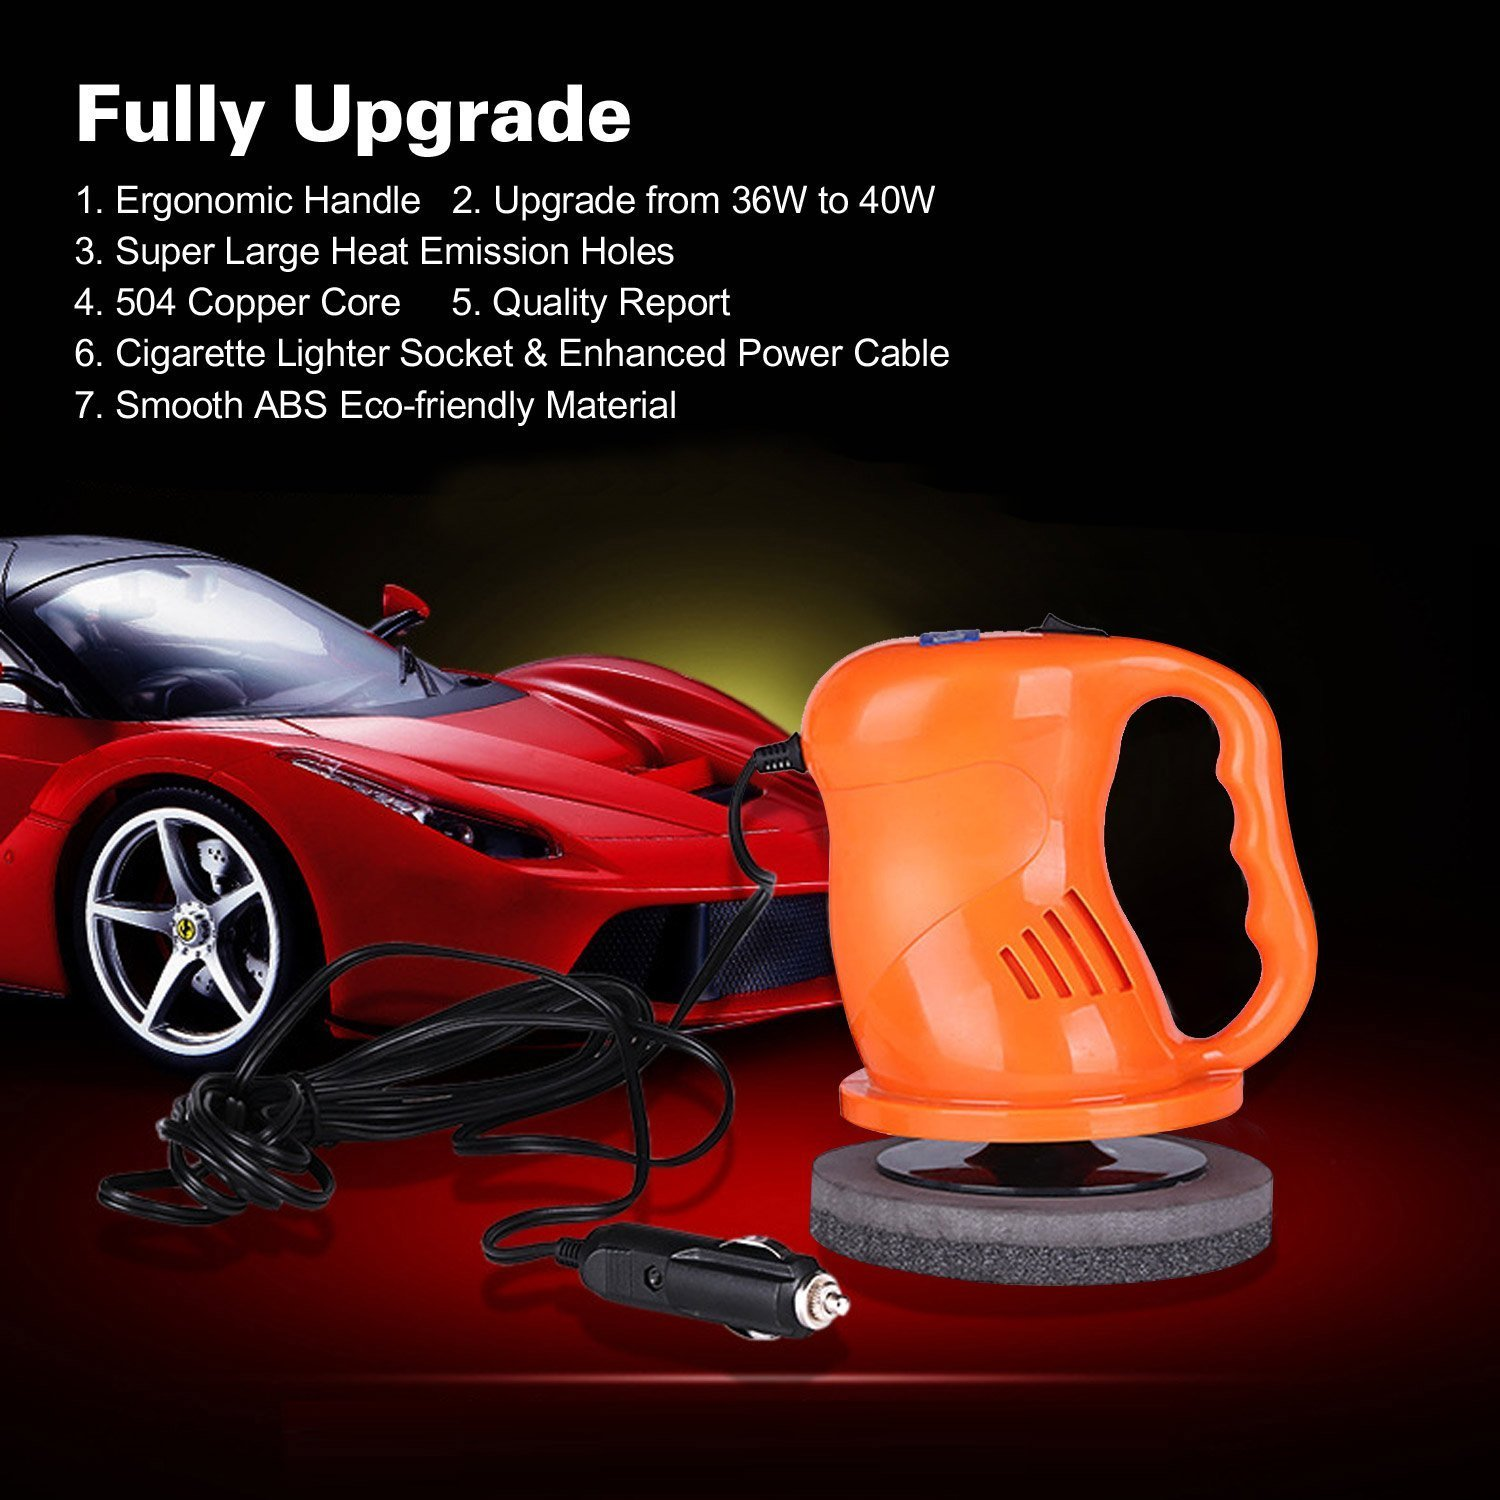 AUTOPDR Car Polishers and Buffers 12V 40W Car Waxing Waxer/Polisher Machine Car Gloss For Car Paint Vehienlar Electric by AUTOPDR (Image #3)